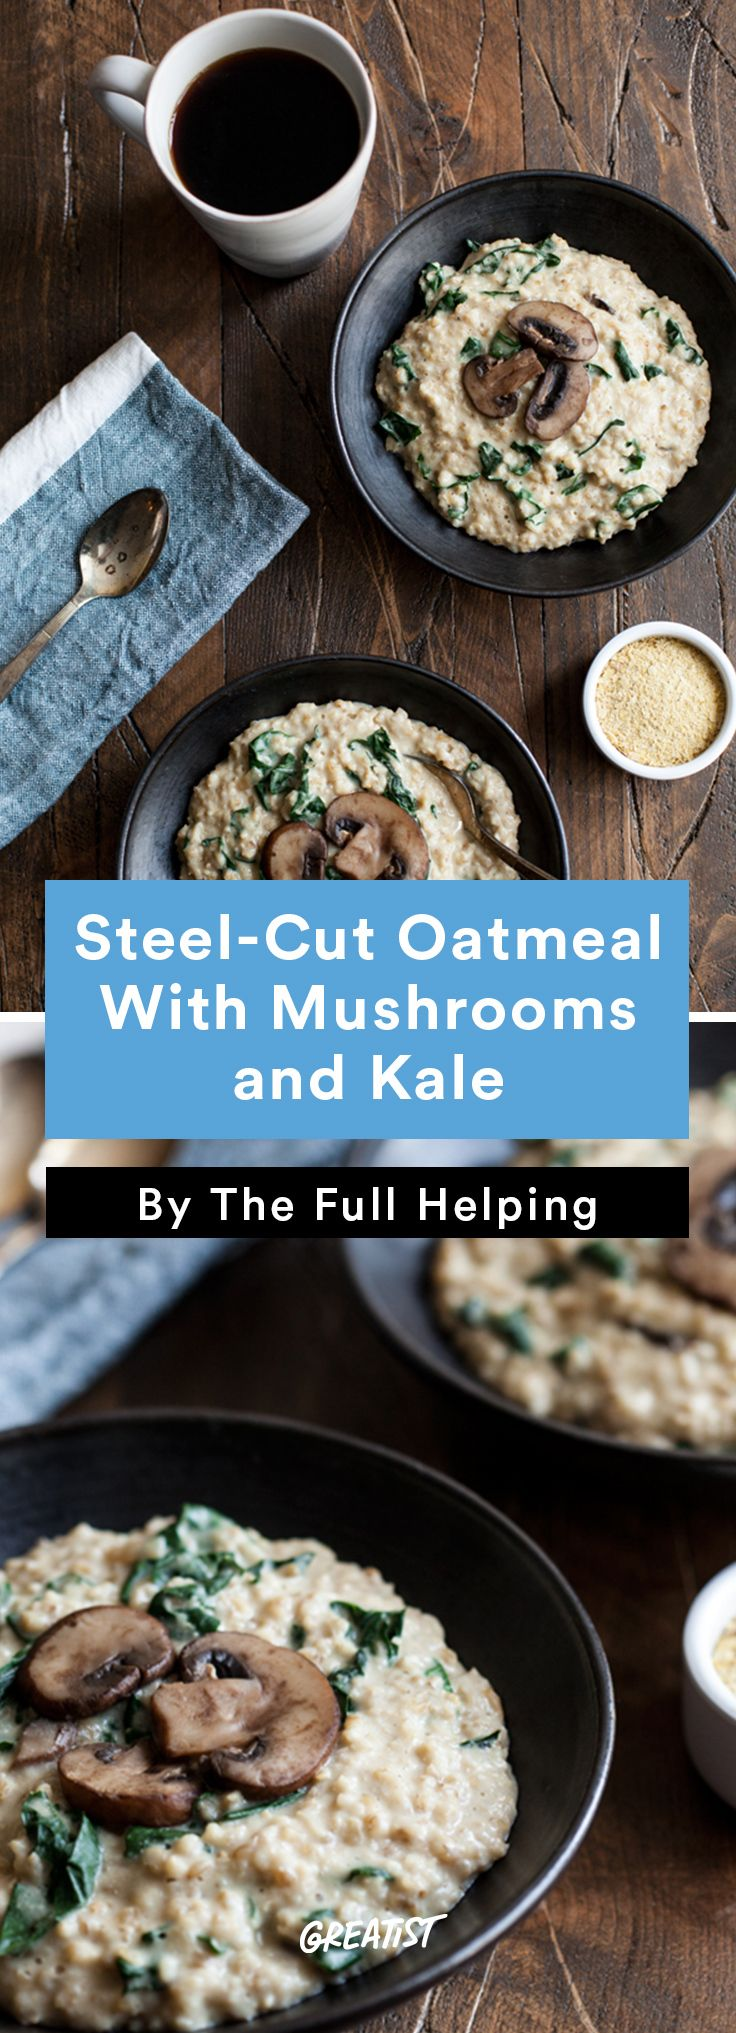 2. Steel-Cut Oatmeal With Mushrooms and Kale #savory #oatmeal #recipe http://greatist.com/eat/oatmeal-recipes-that-are-savory-not-sweet